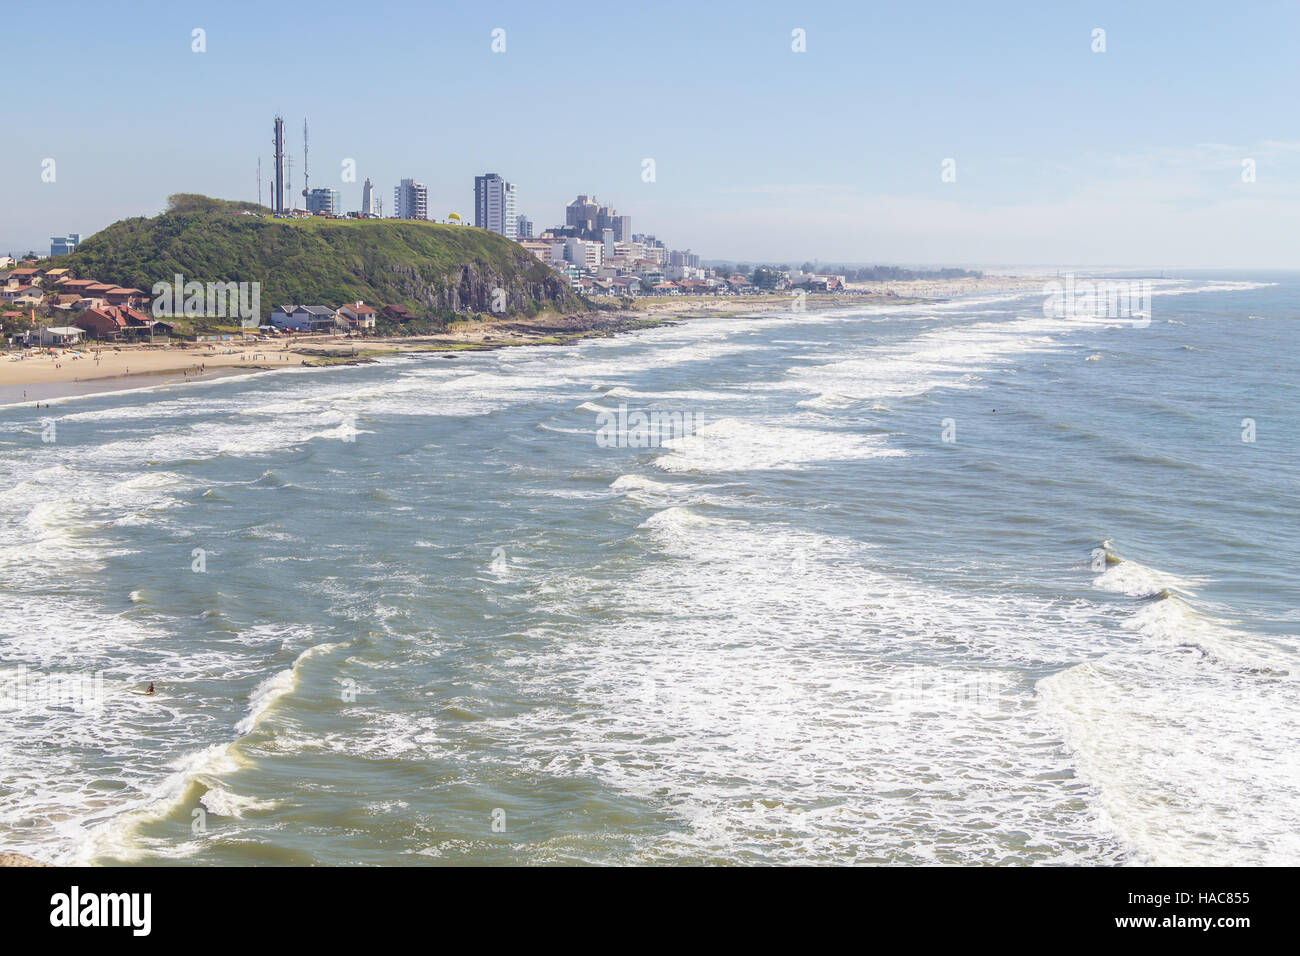 Cal and Grande beachs in a sunny and windy day Stock Photo